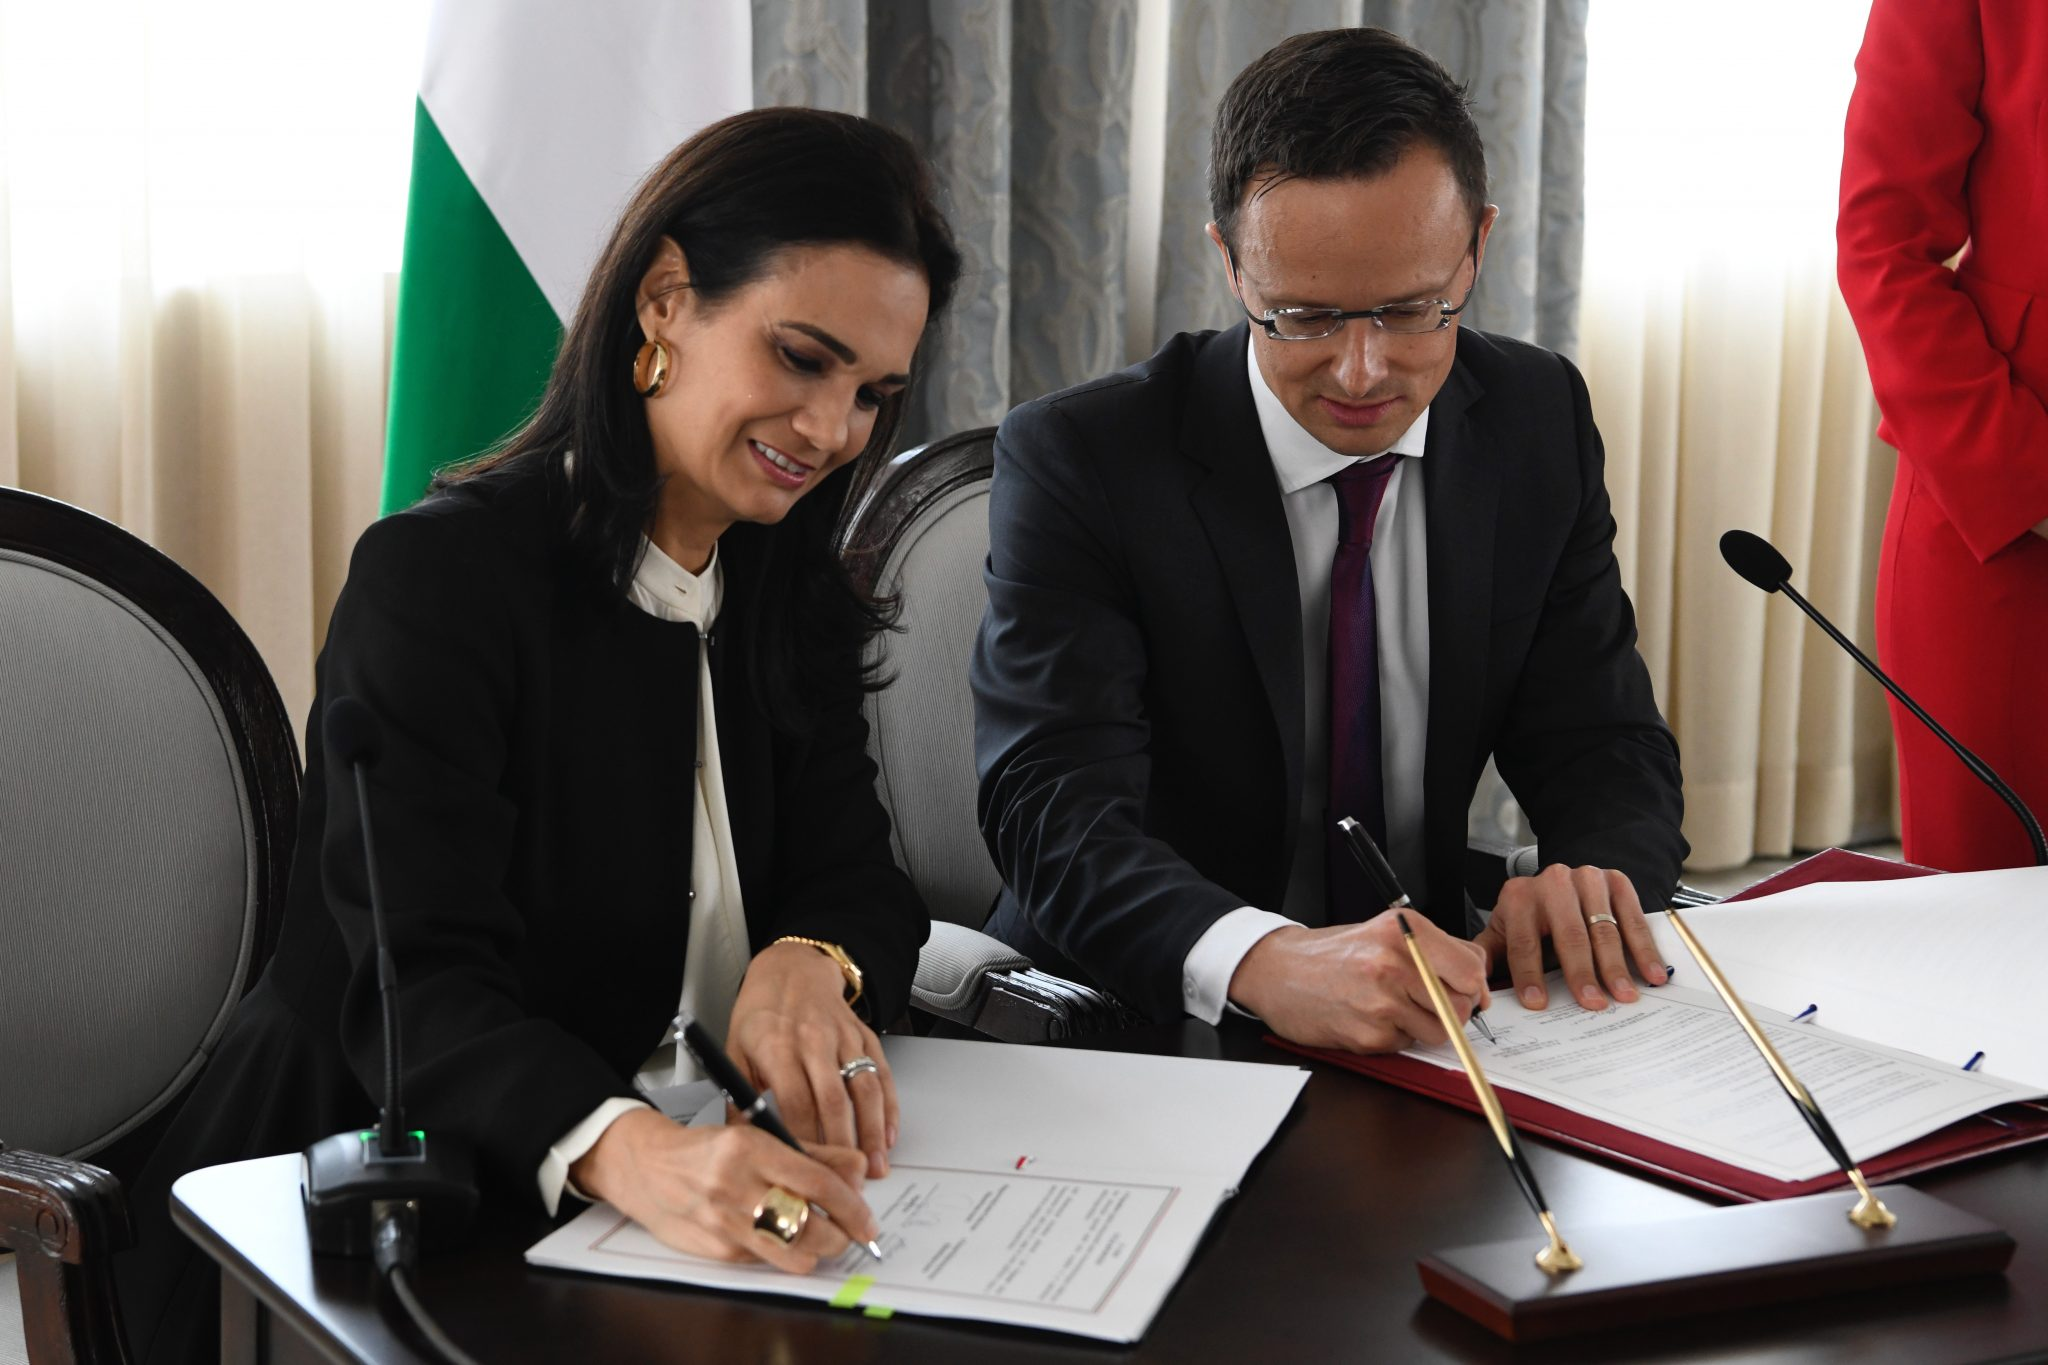 Hungary to Open Consular, Trade Mission in Panama post's picture